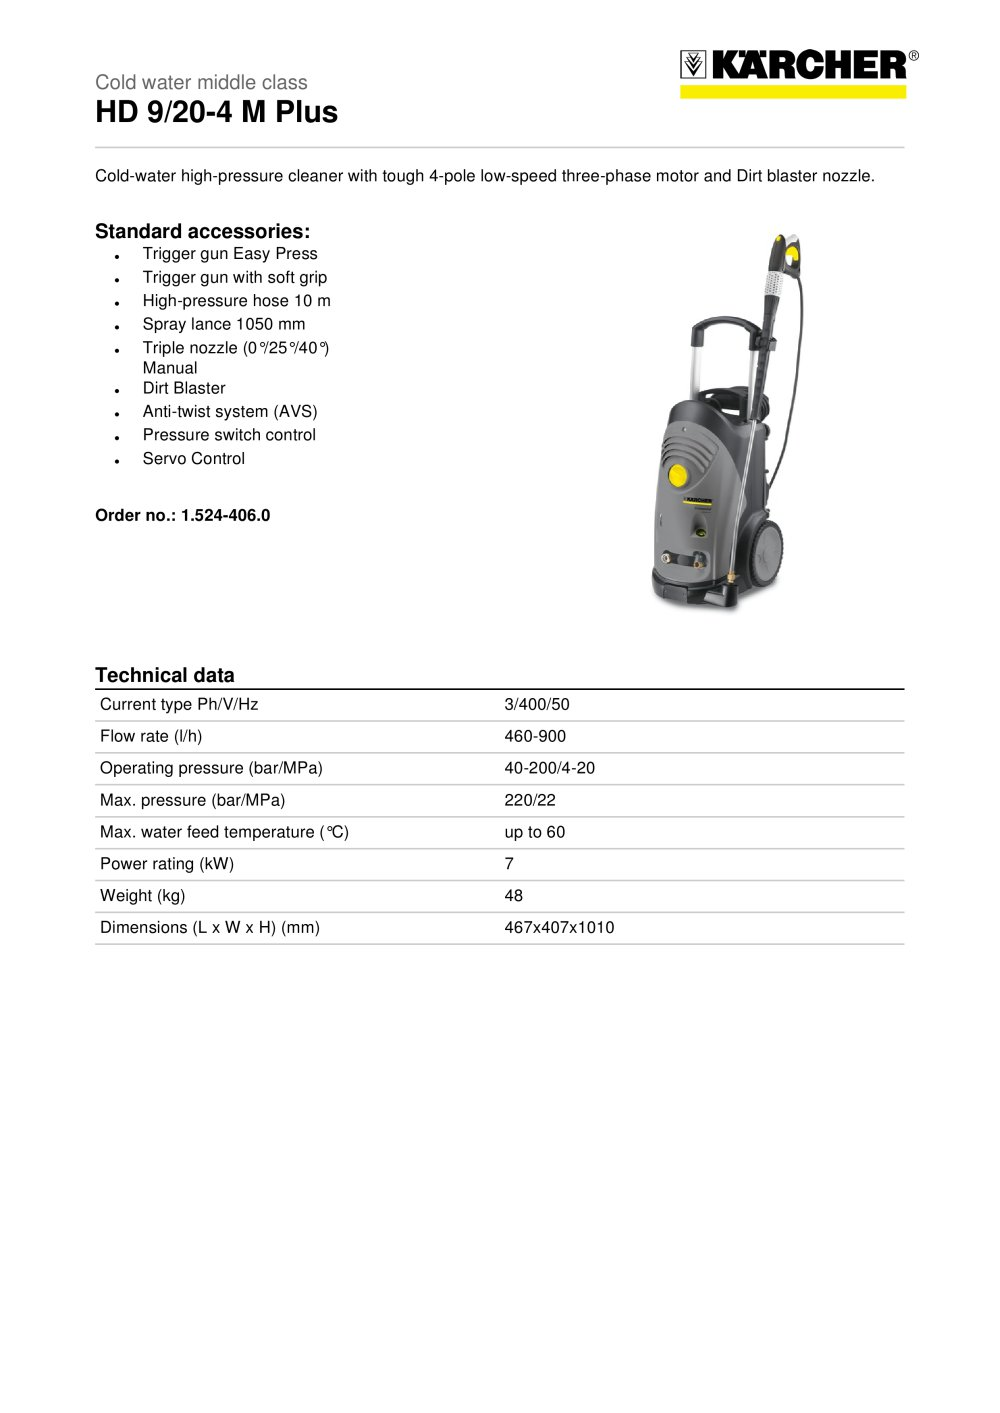 hd 9 20 4 m plus karcher pdf catalogues documentation brochures rh pdf archiexpo com Karcher USA Manuals Karcher Pressure Washer User Manual